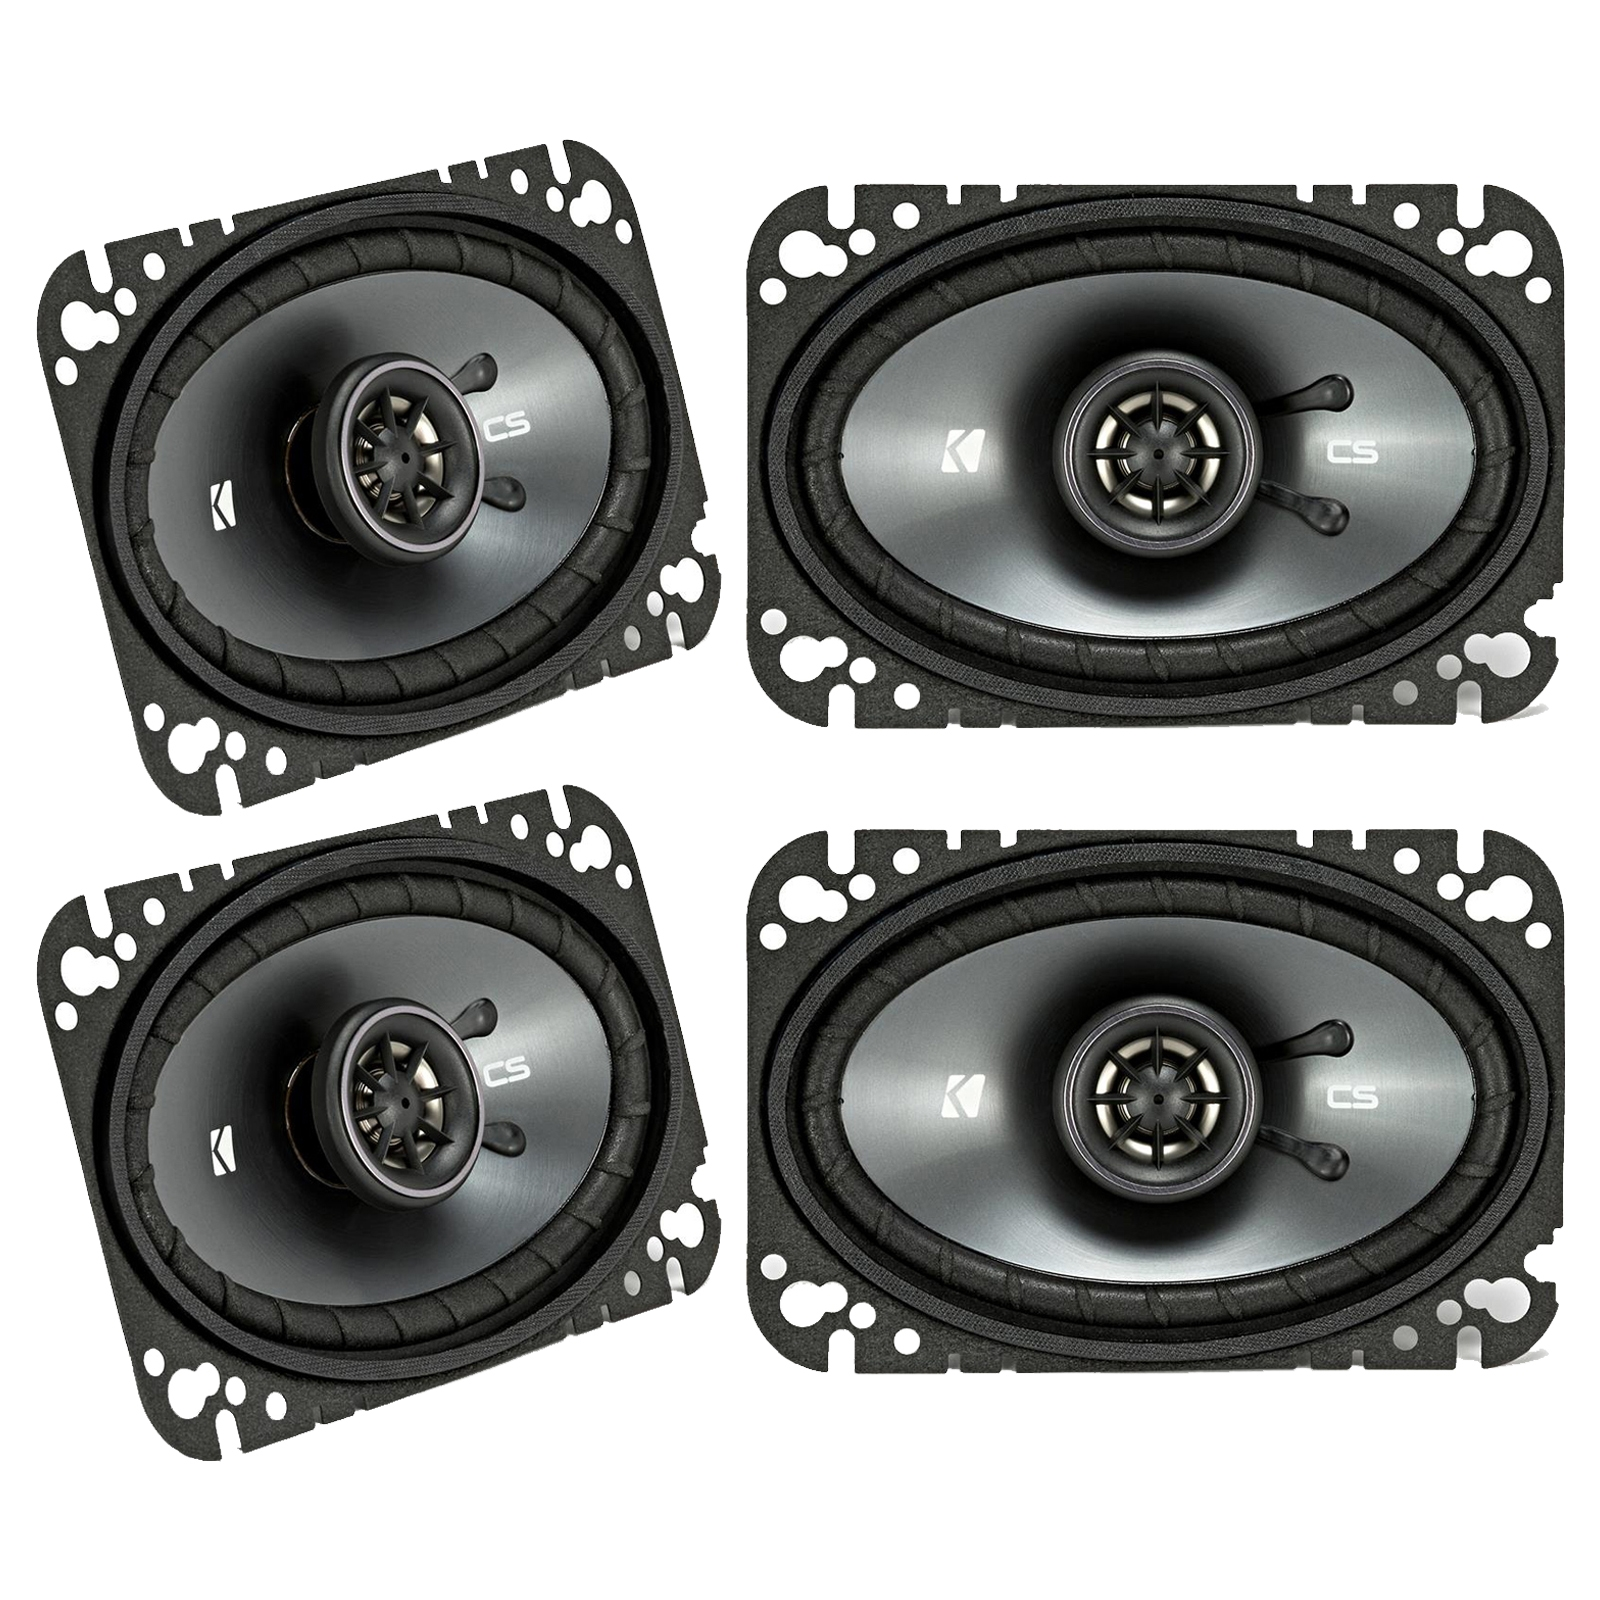 "4 x Kicker 43CSC464 CSC46 4x6"" 4-Ohm Coaxial Speakers (2 Pairs)"